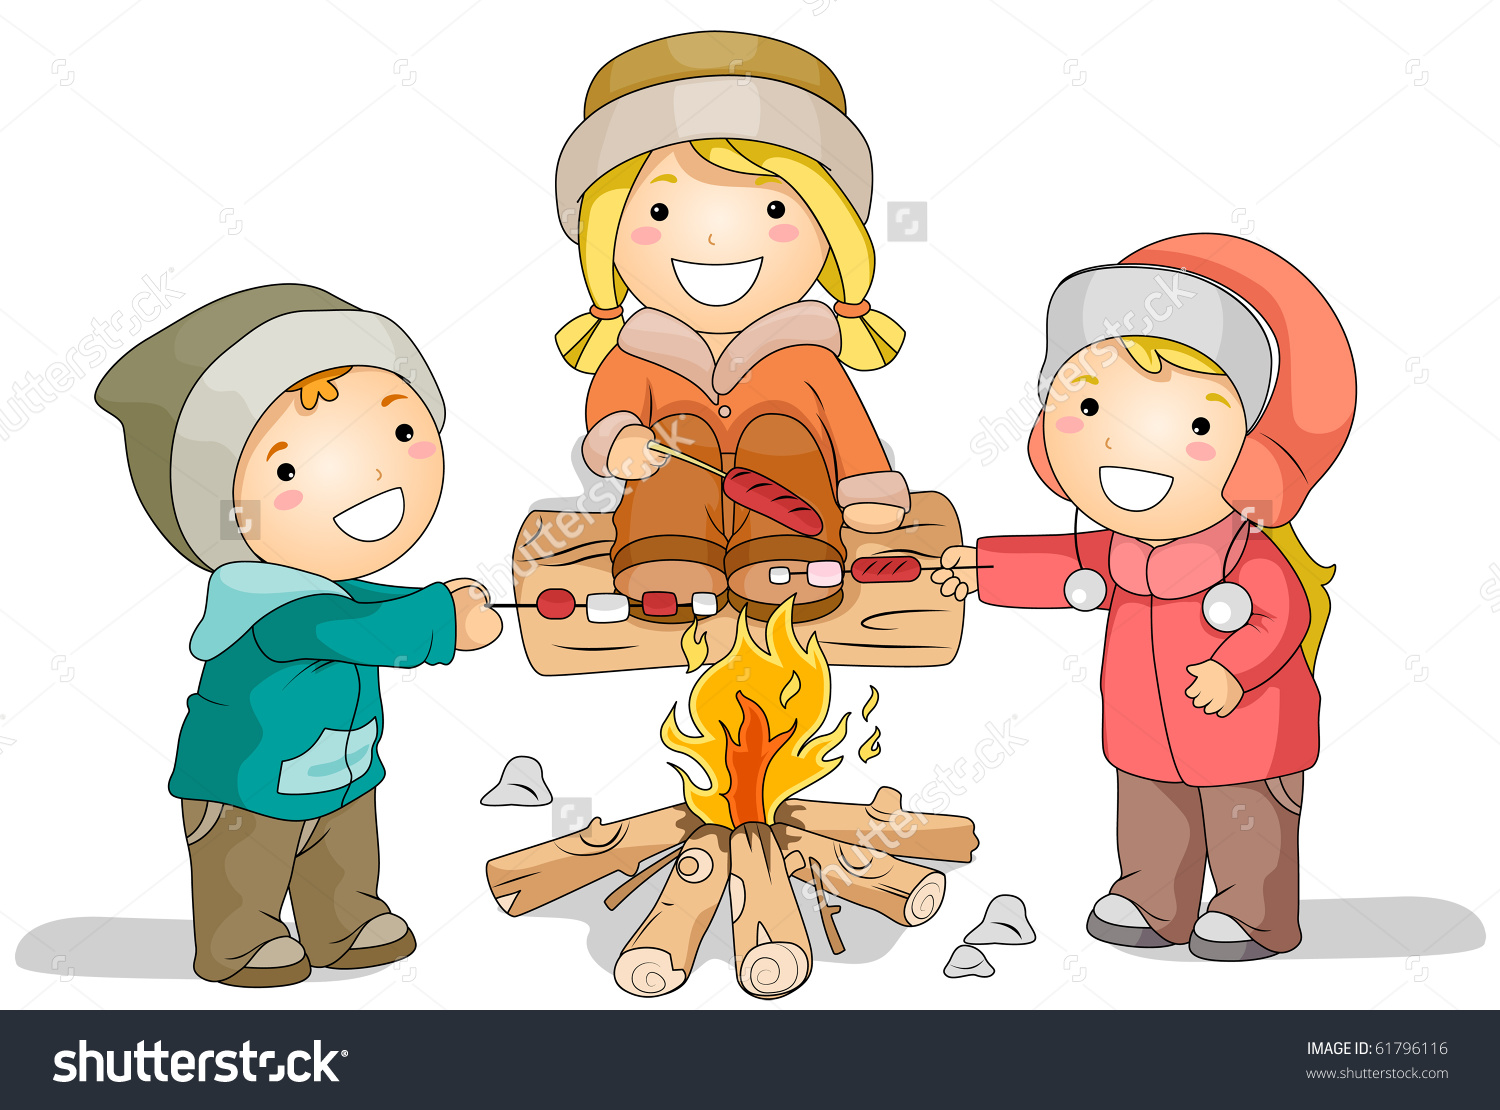 Bonfire with kids clipart vector royalty free download Kids and bonfire clipart - ClipartFest vector royalty free download